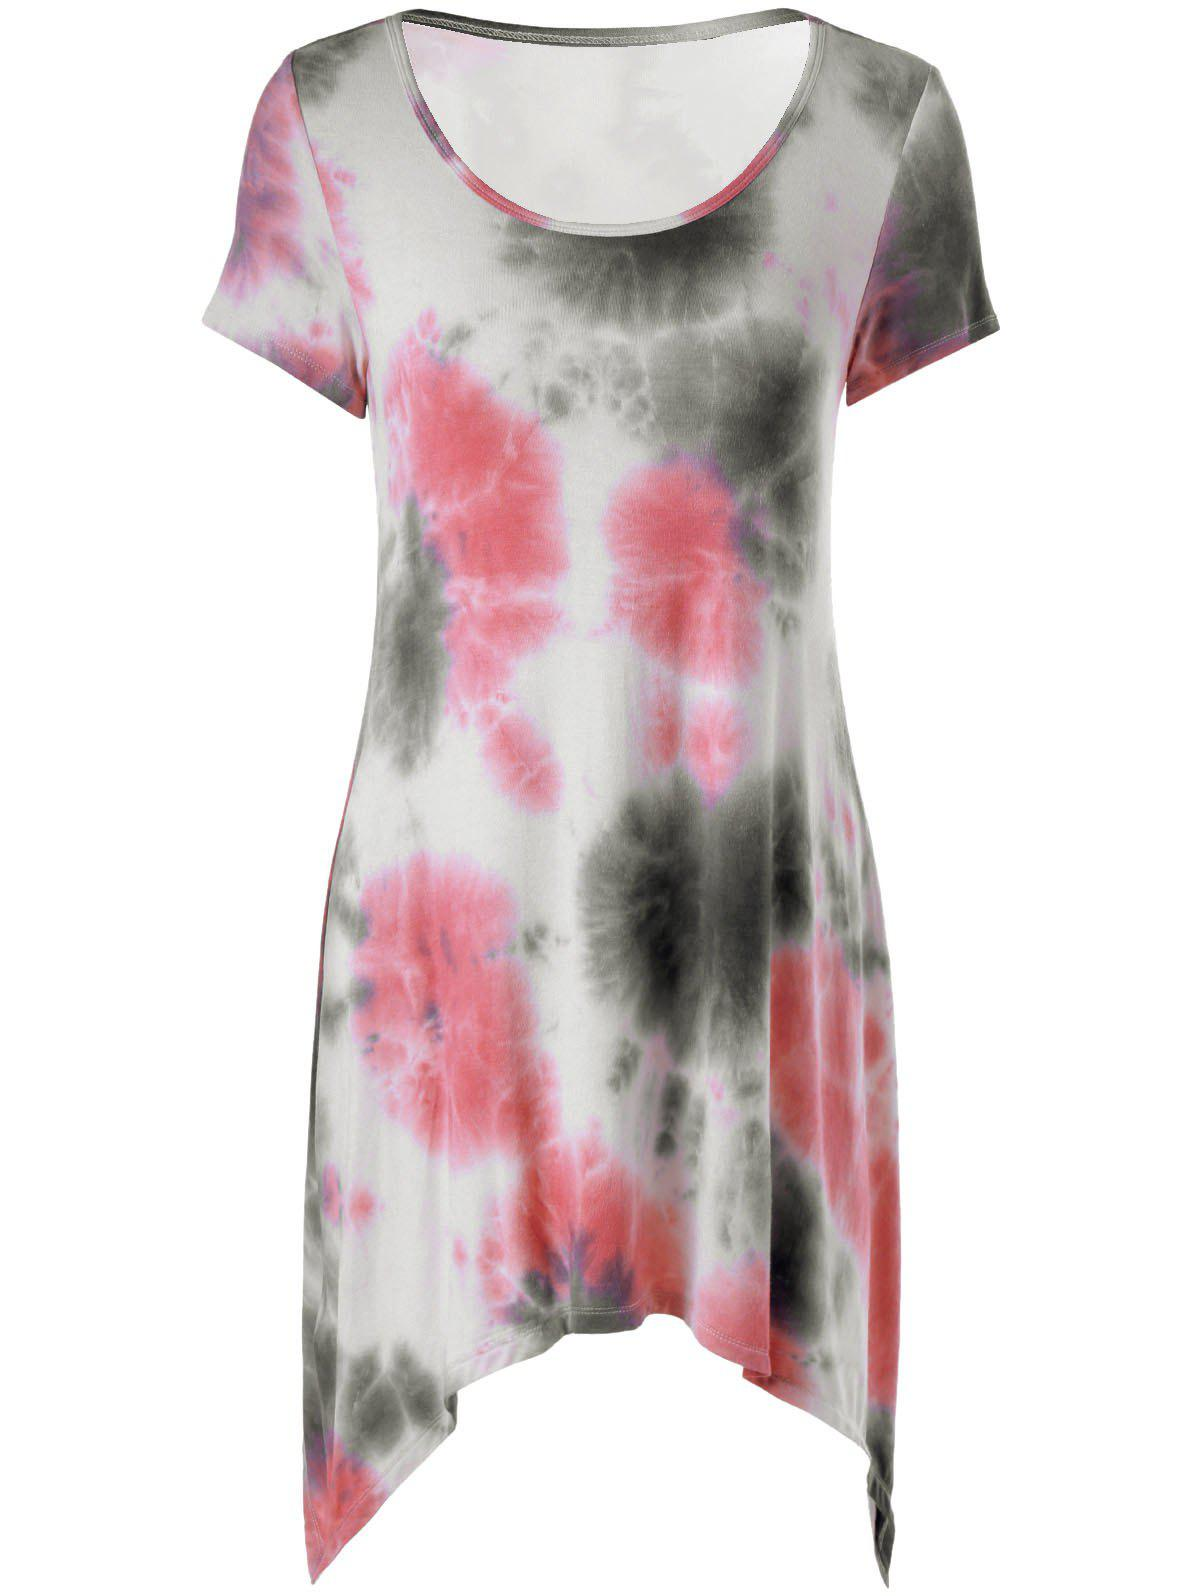 Fashionable Round Collar Tie-Dye Short Sleeve Dress For Women - COLORFUL L